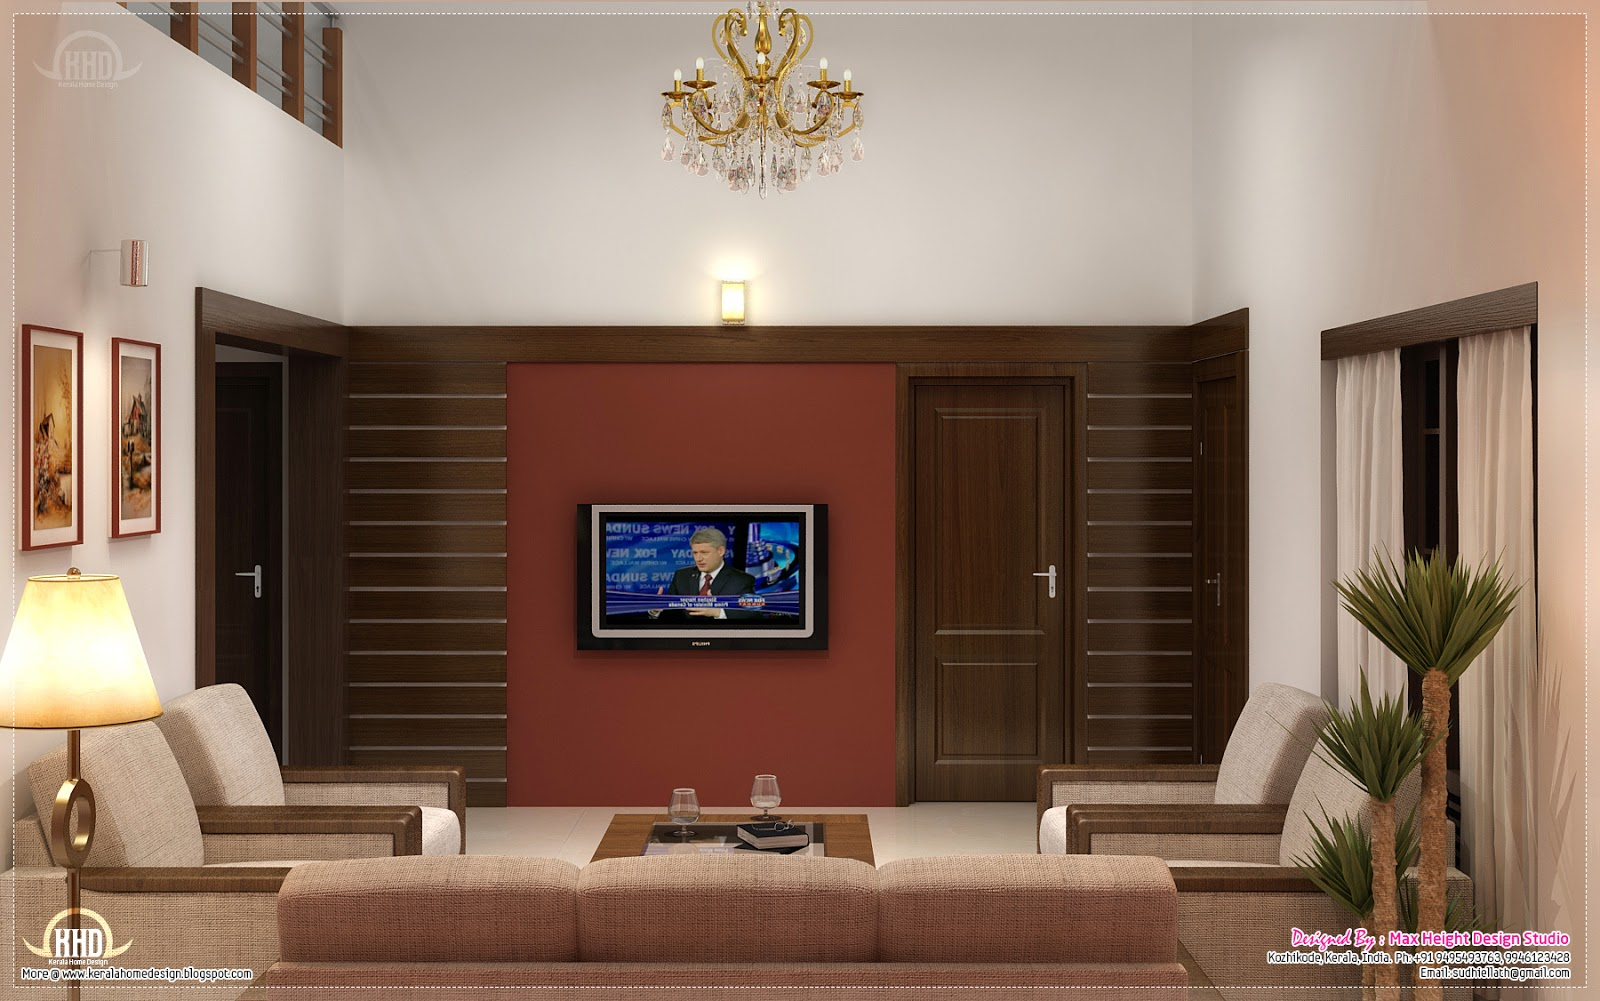 Home interior design ideas home kerala plans for Interior designs in home